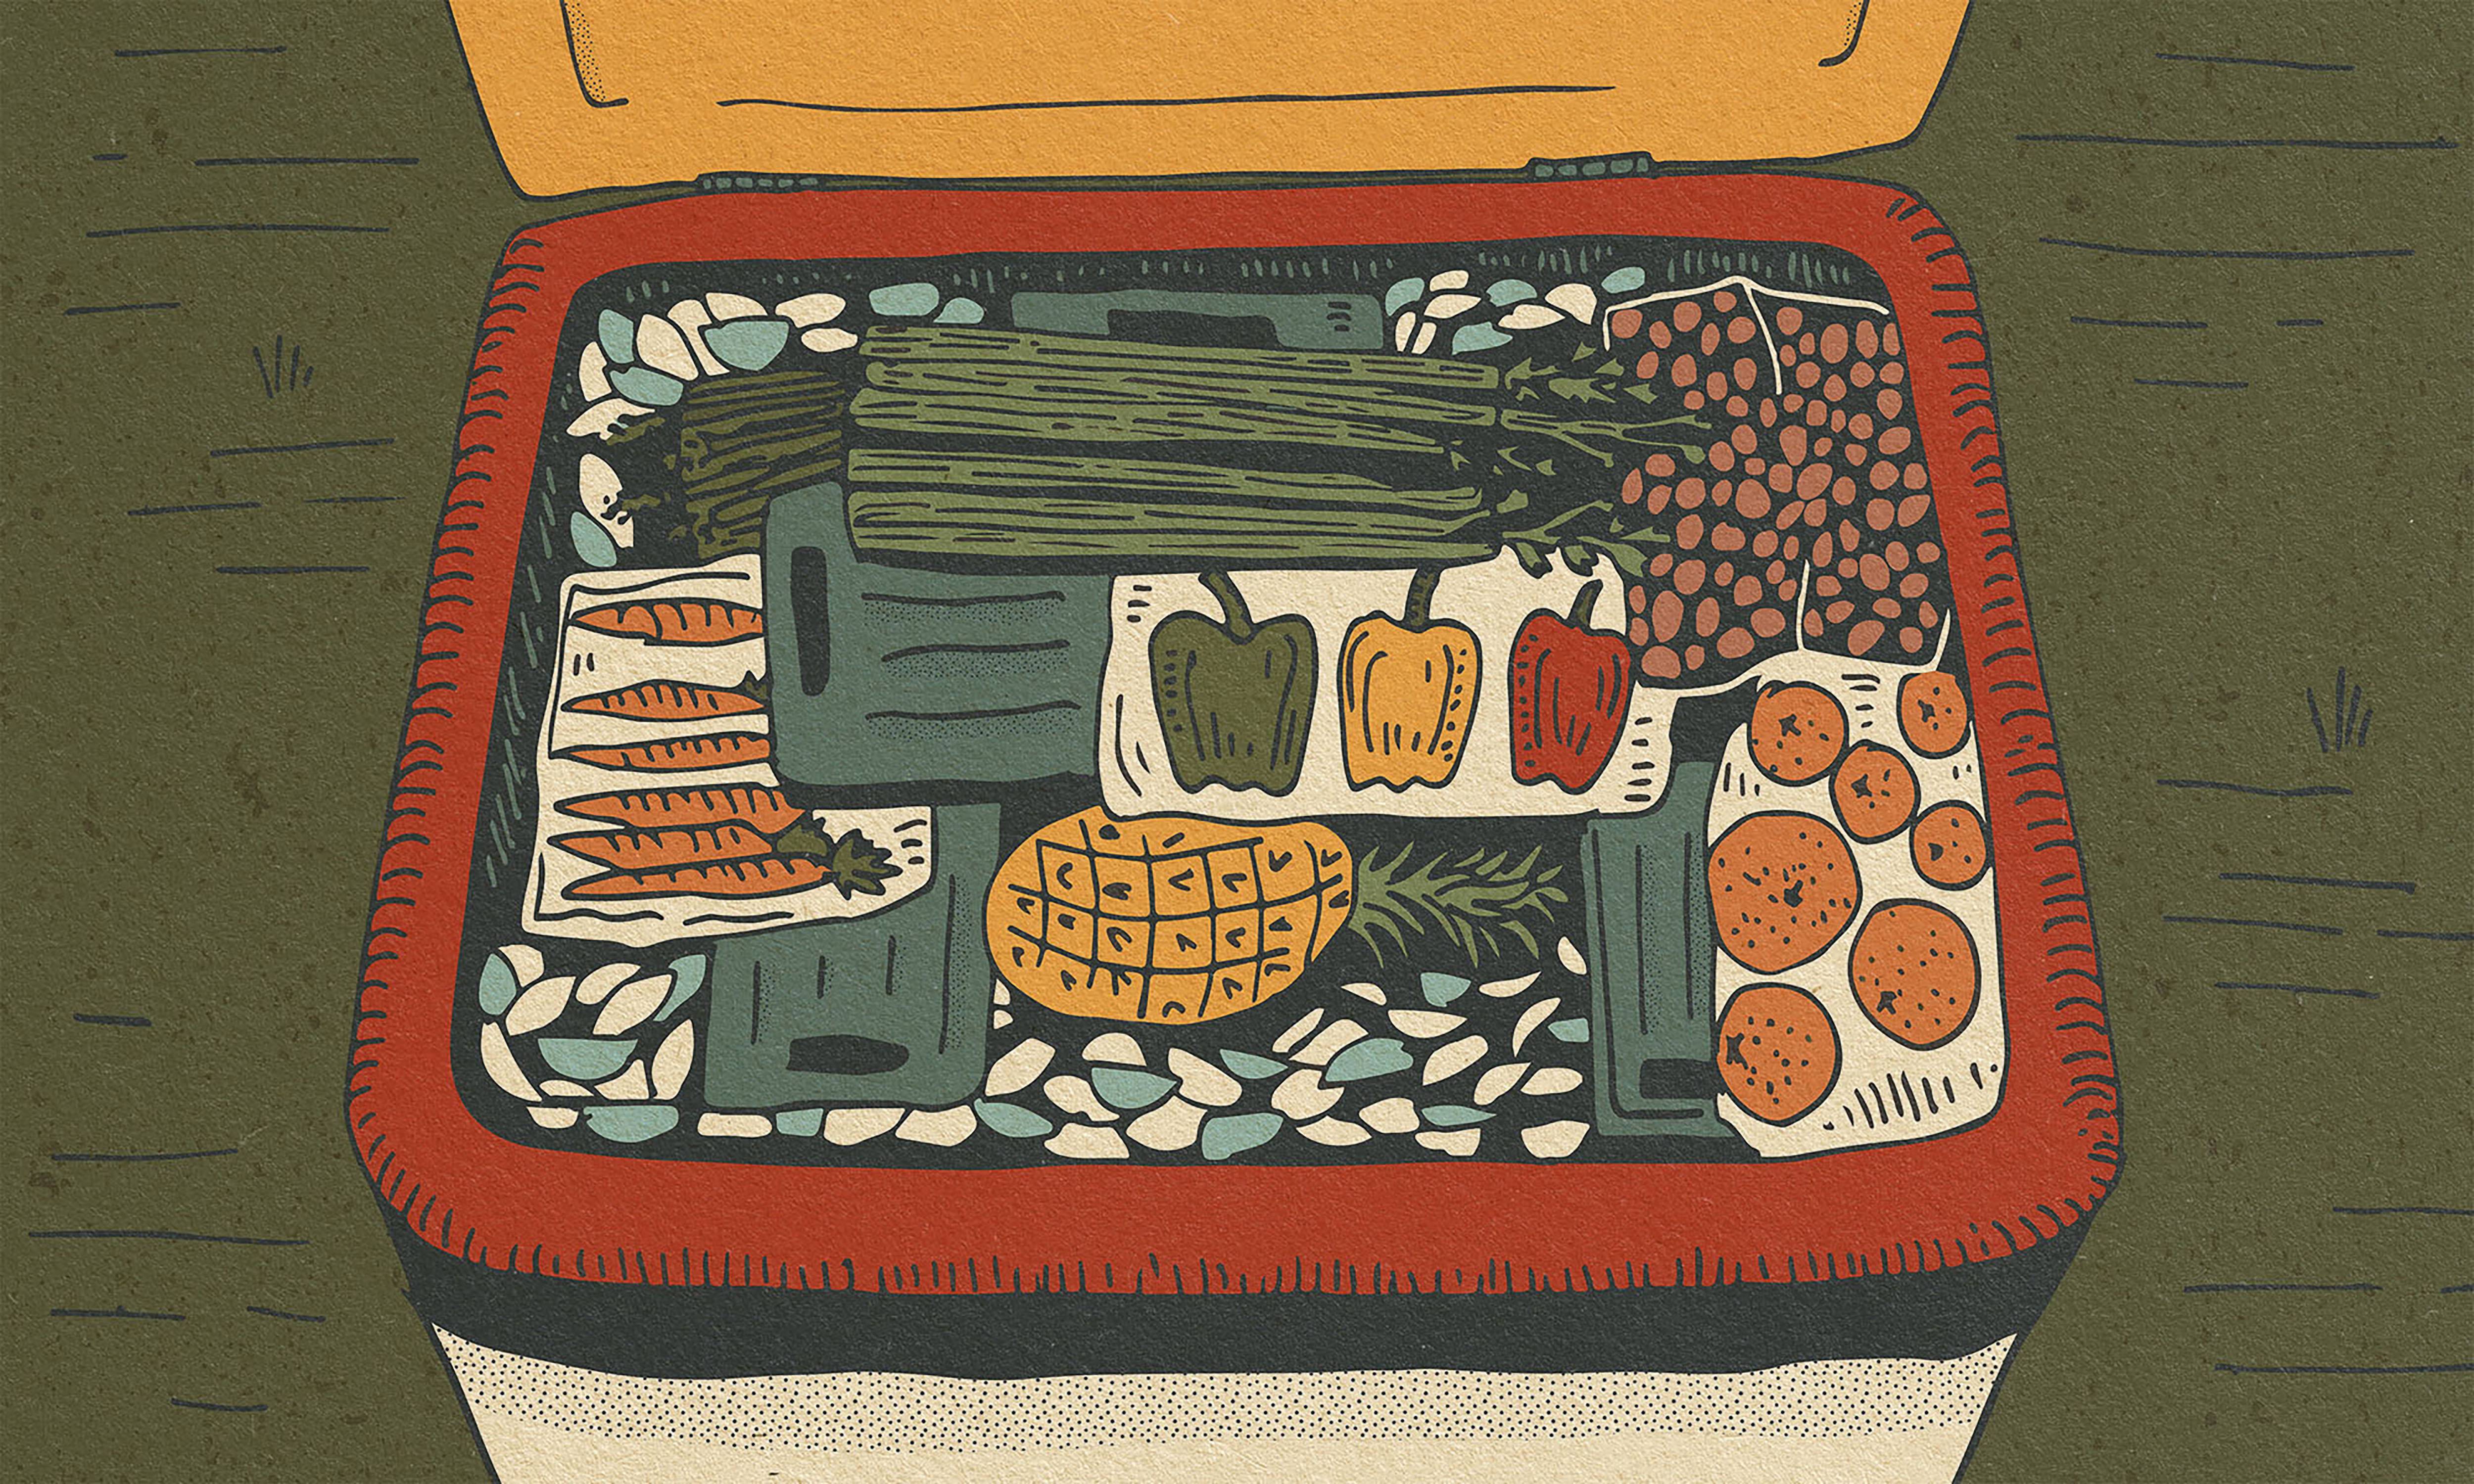 An overhead view of a cooler packed to the brim in a strategic balanced manner. Illustration.